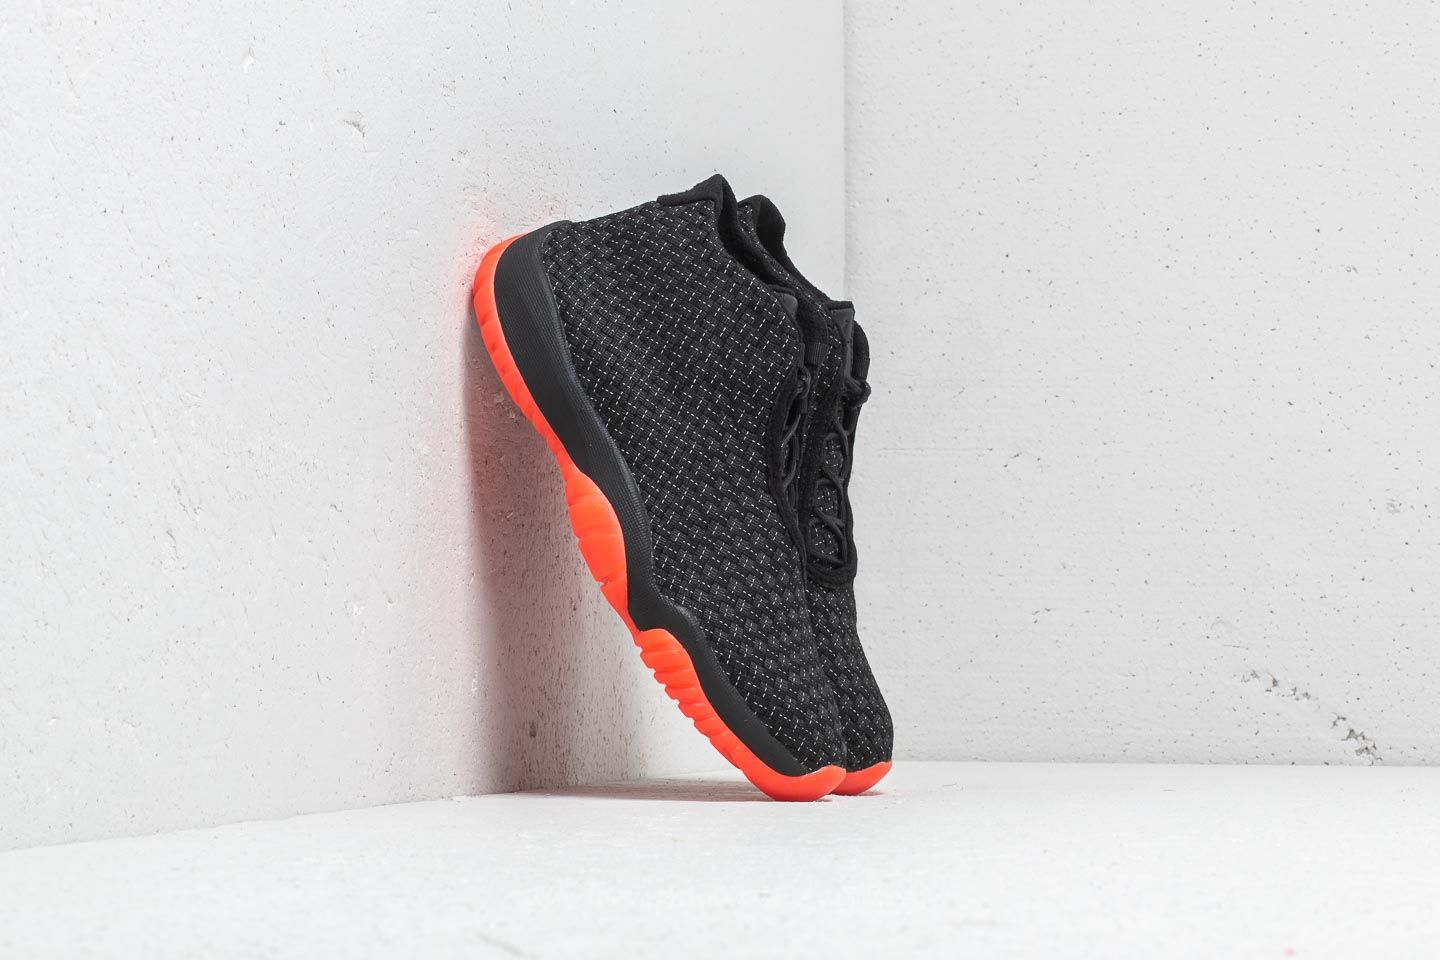 separation shoes 2bd58 8e97b Air Jordan Future Premium